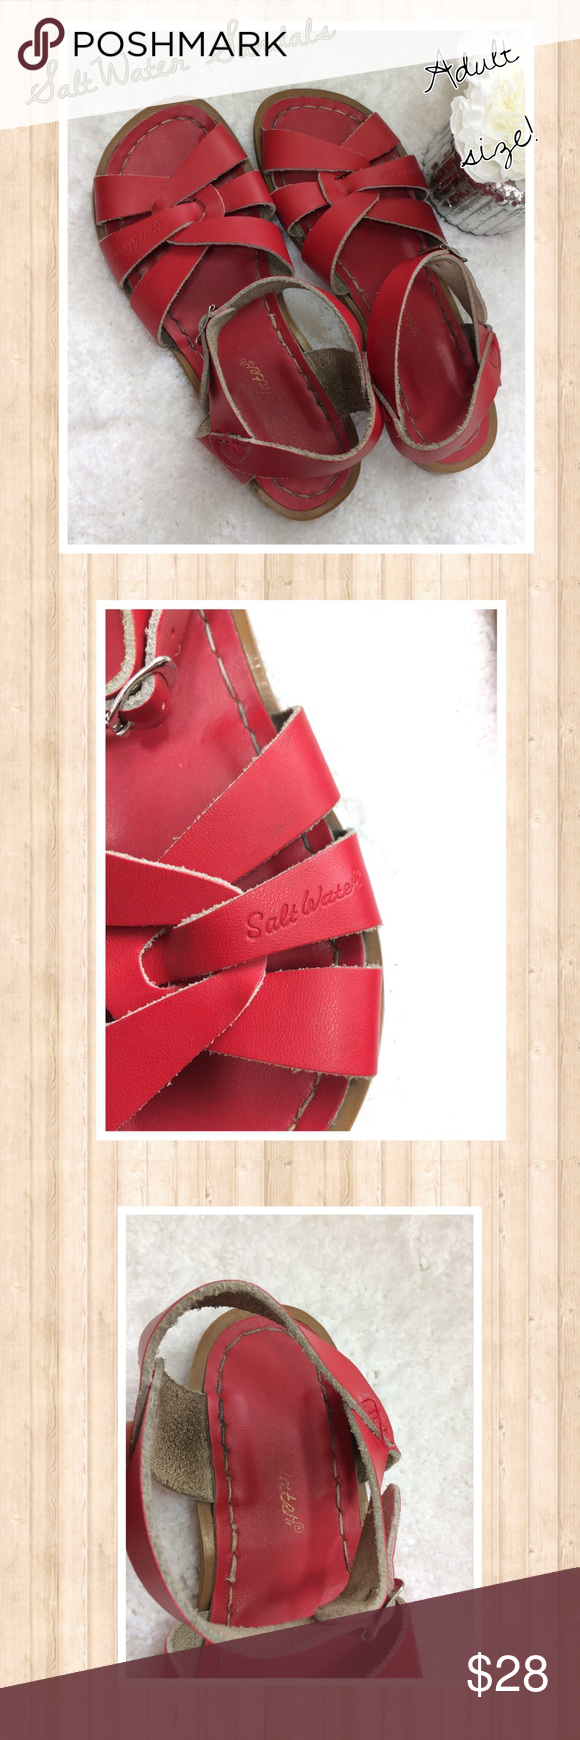 Red Adult size Salt Water Sandals So cute and ready for Summer! Nice preowned condition. Size 4 or women's 7. Leather uppers. Washable. Non smoking home. Salt Water Sandals by Hoy Shoes Sandals